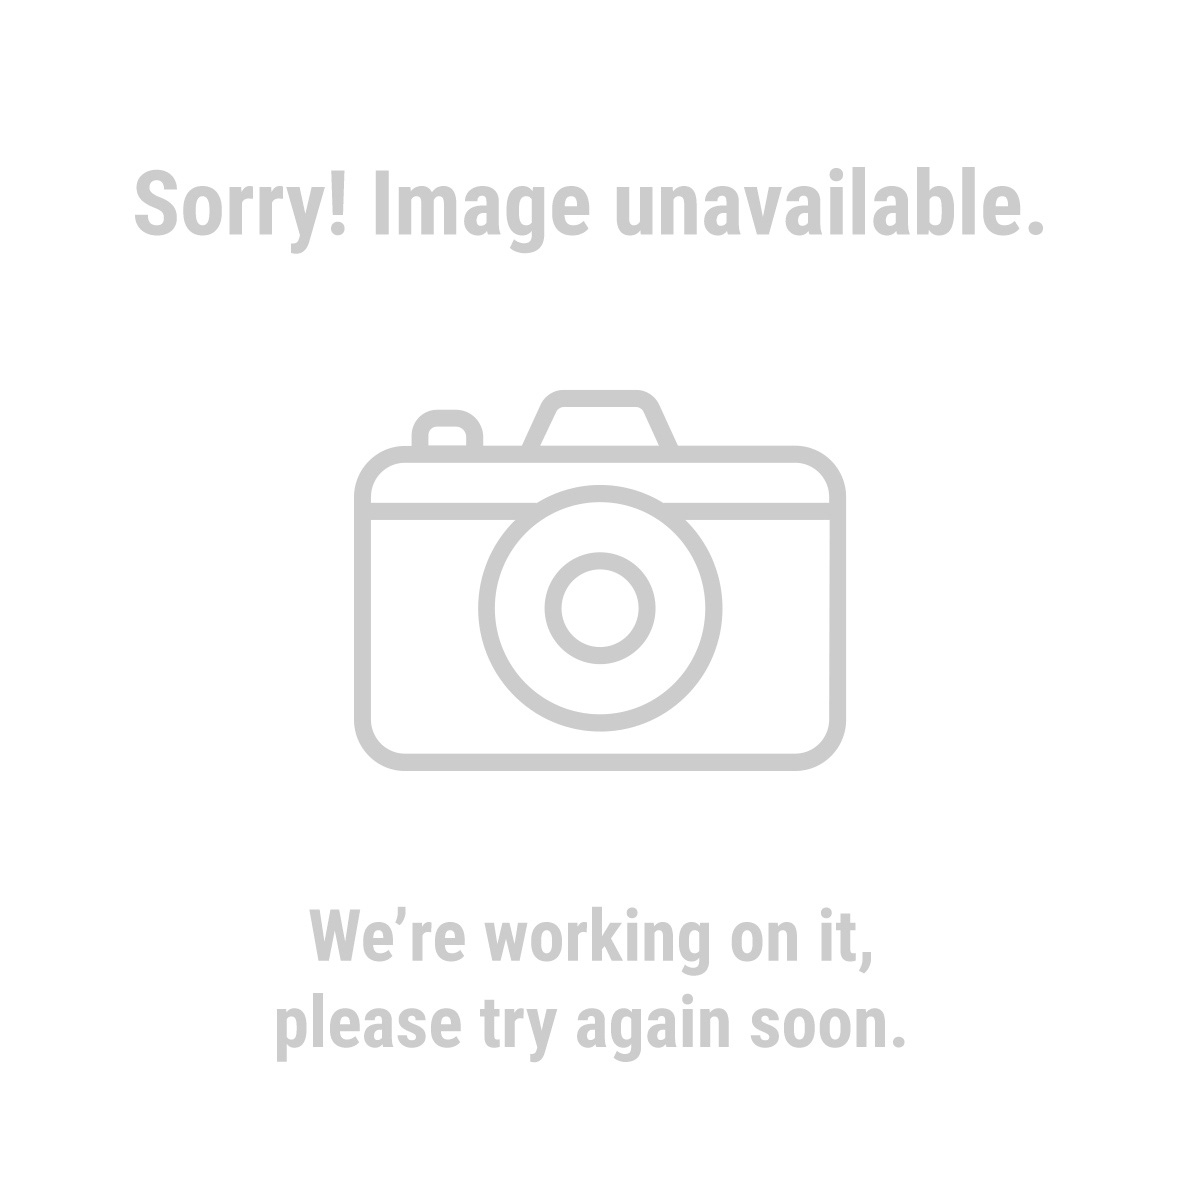 CLASSIC ACCESSORIES 98988 Polypro III™ Deluxe 20 Ft. to 23 Ft. RV Cover